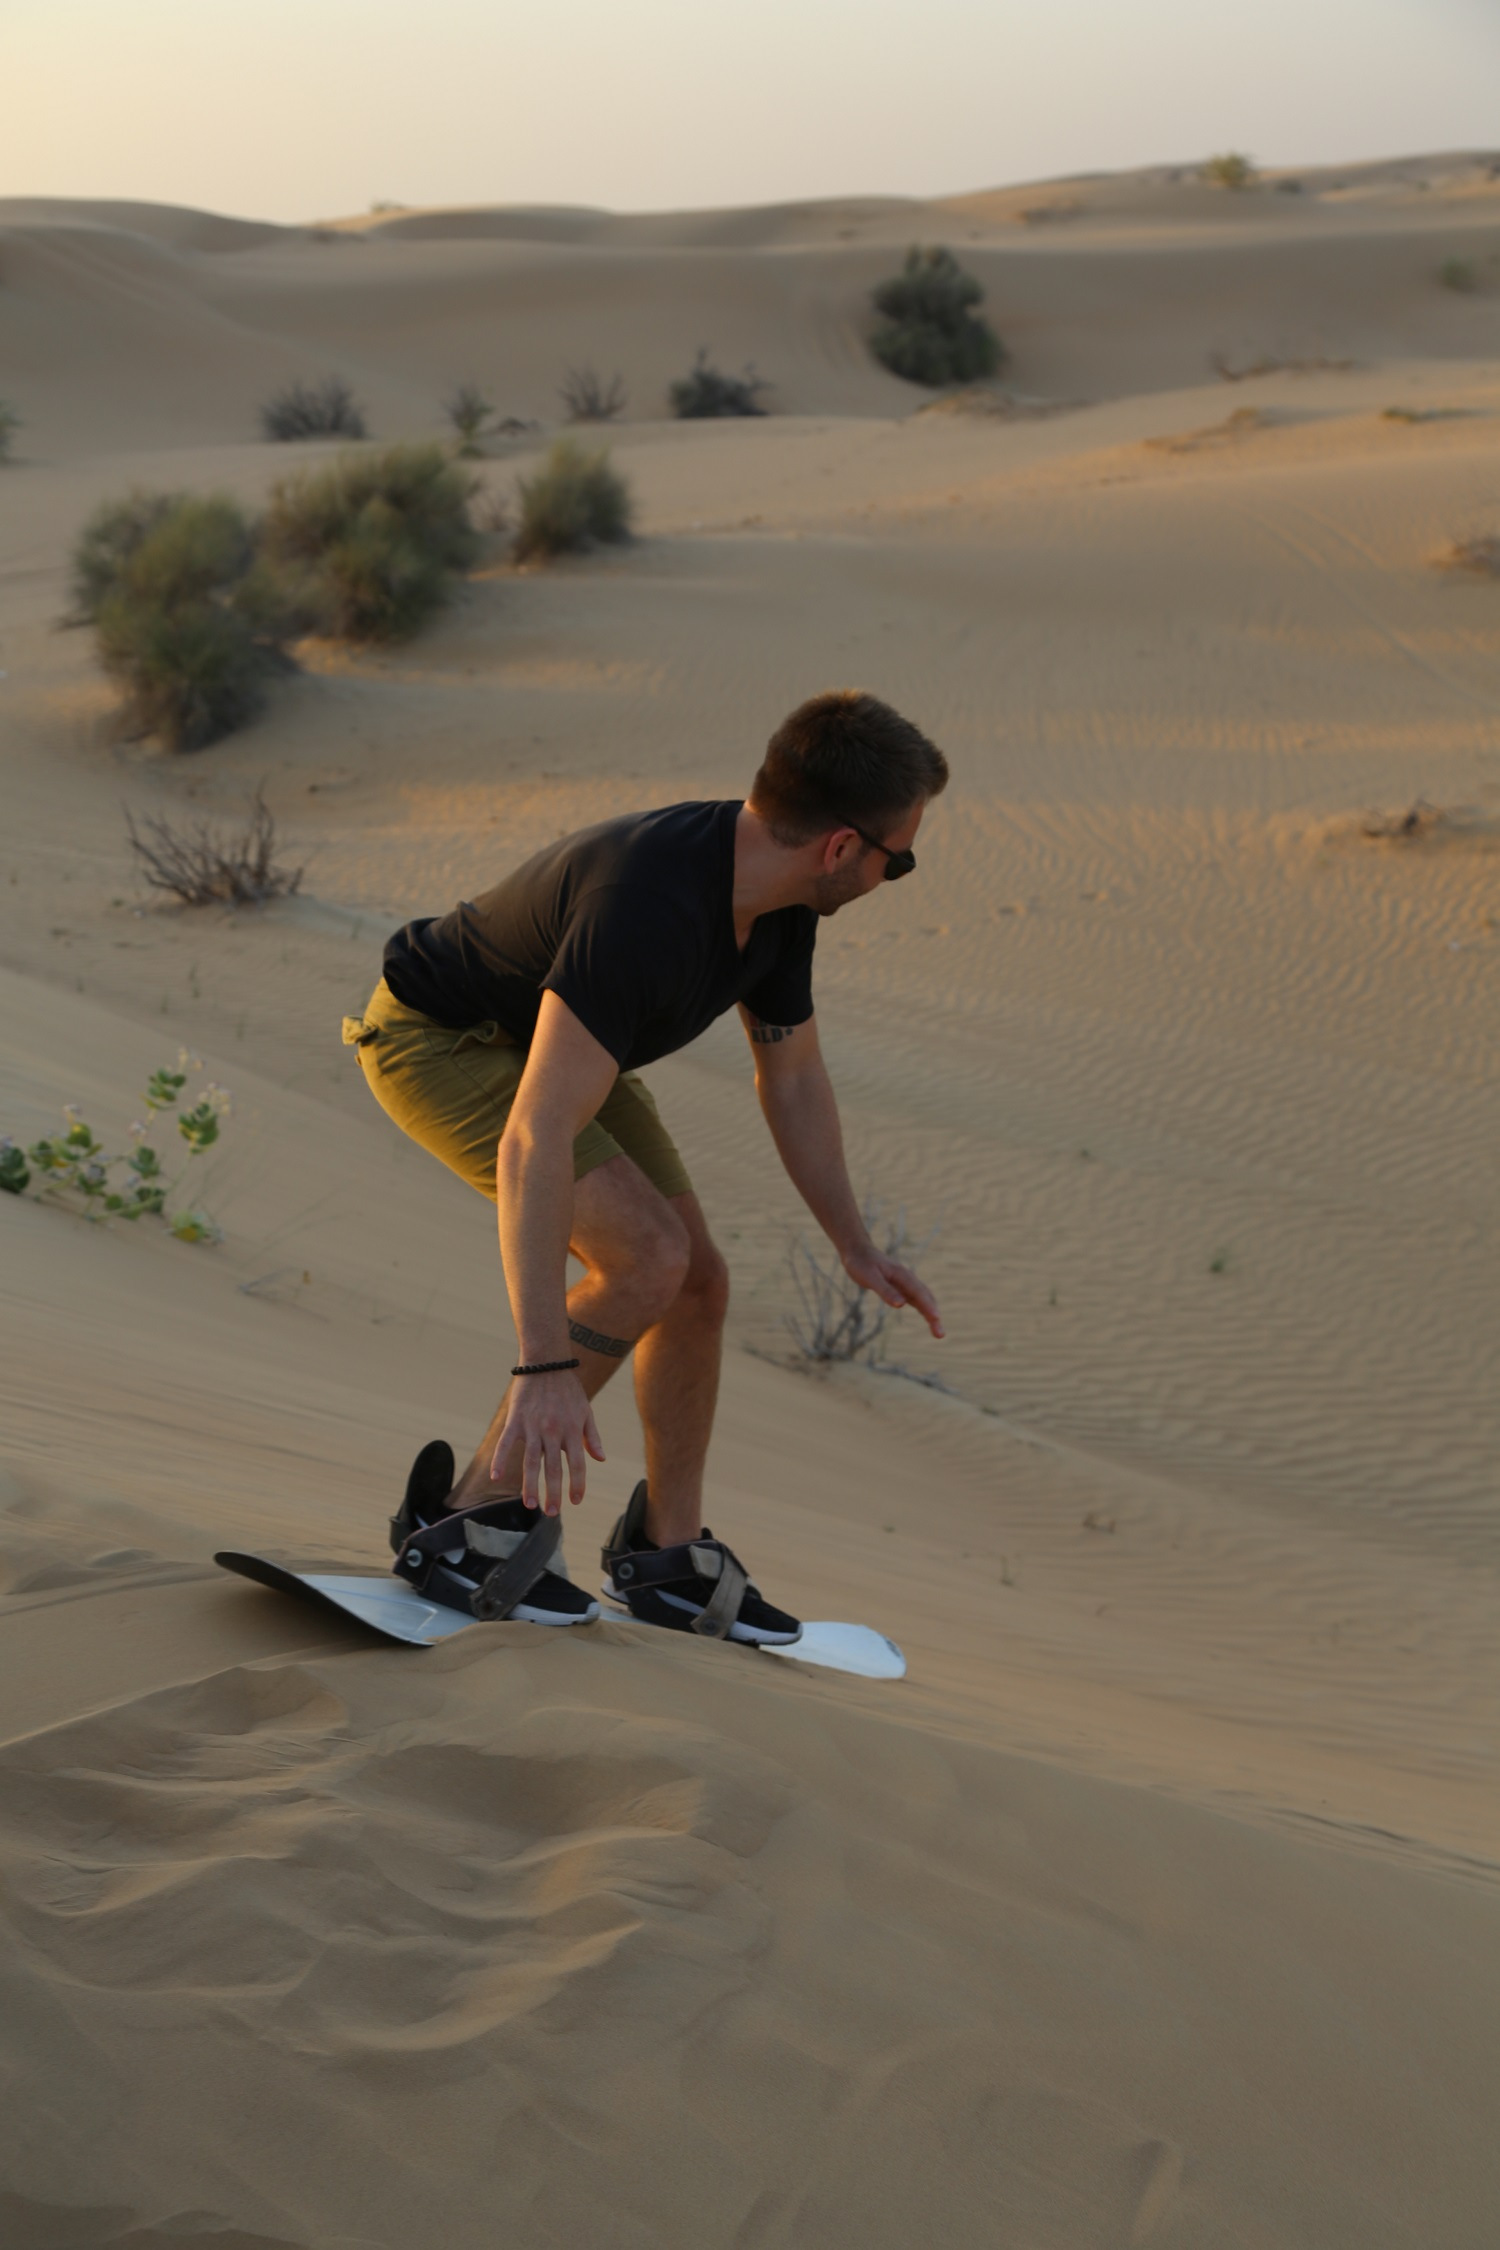 sandboarding on desert safari dubai